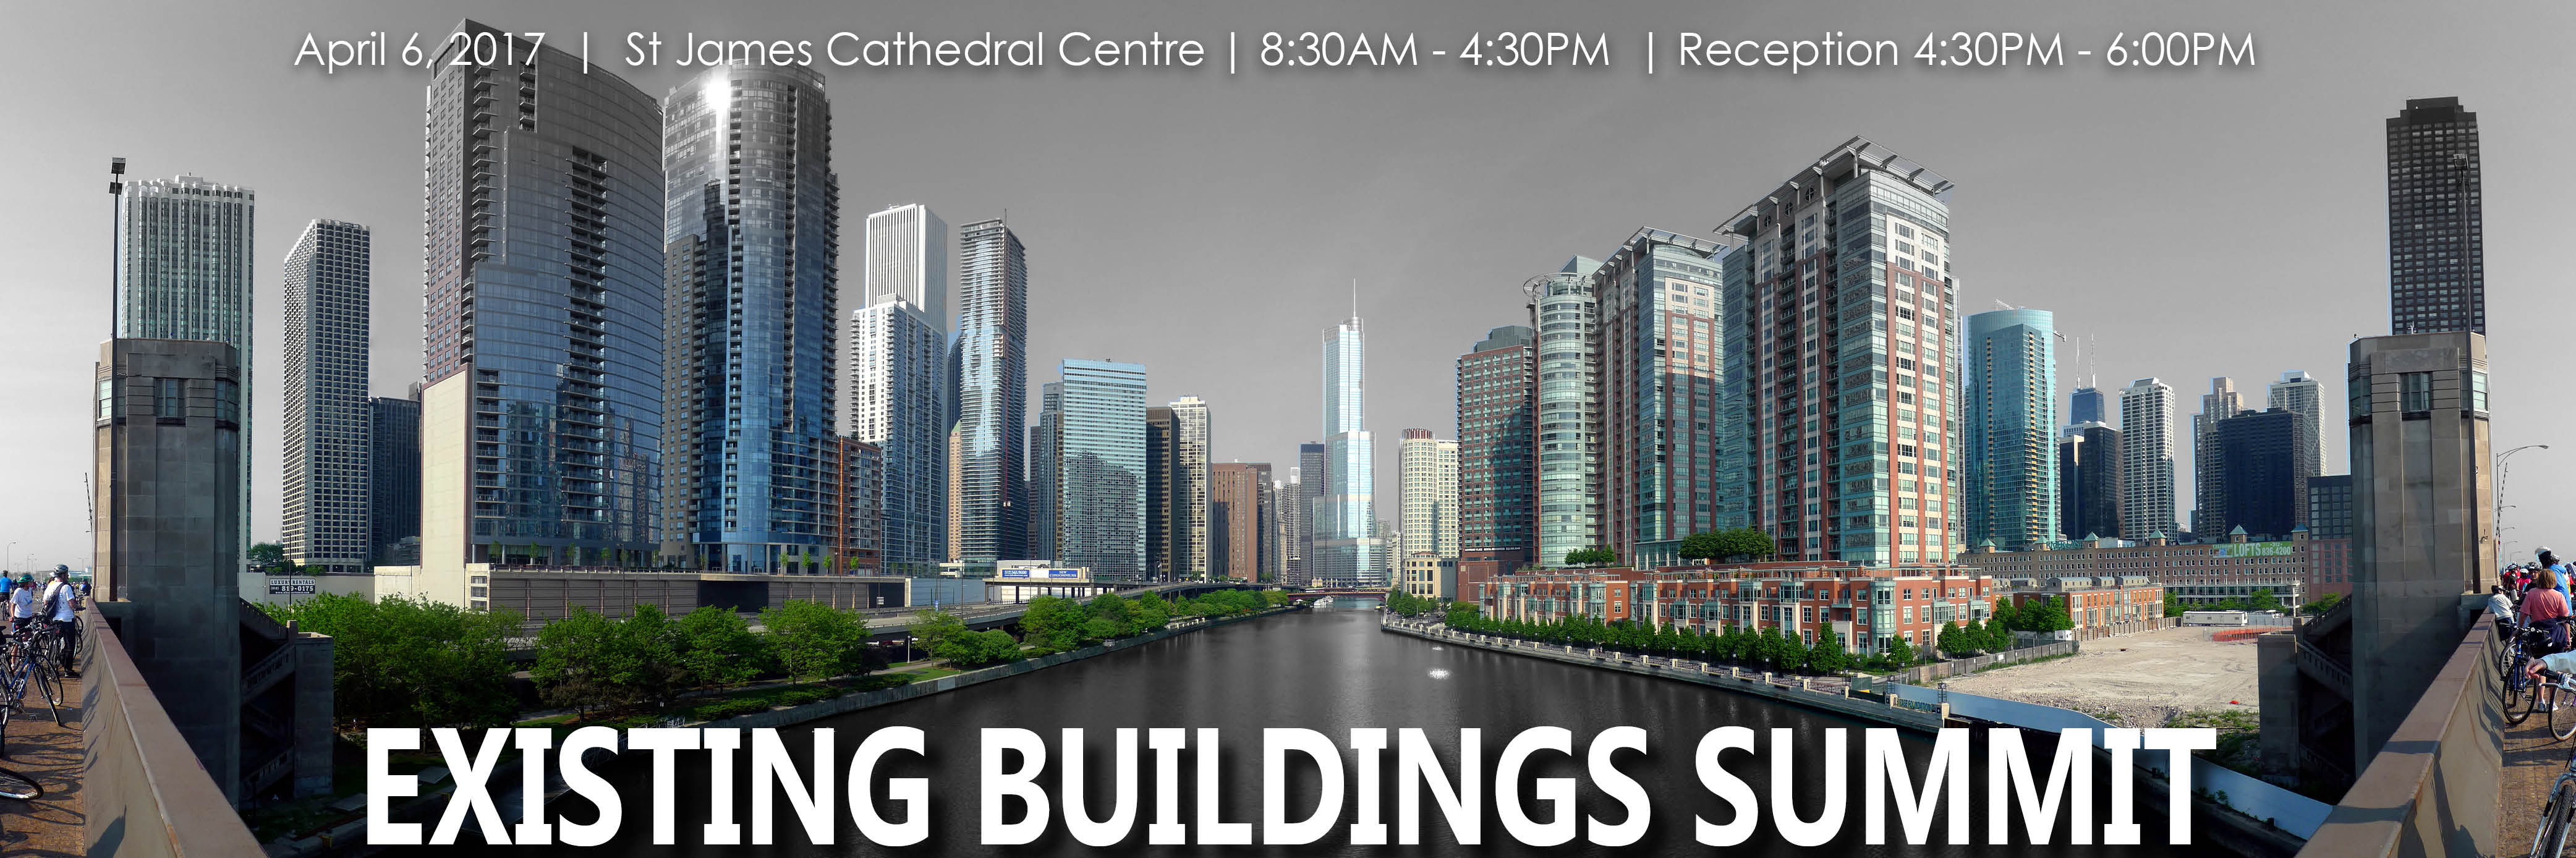 Existing Building Summit banner